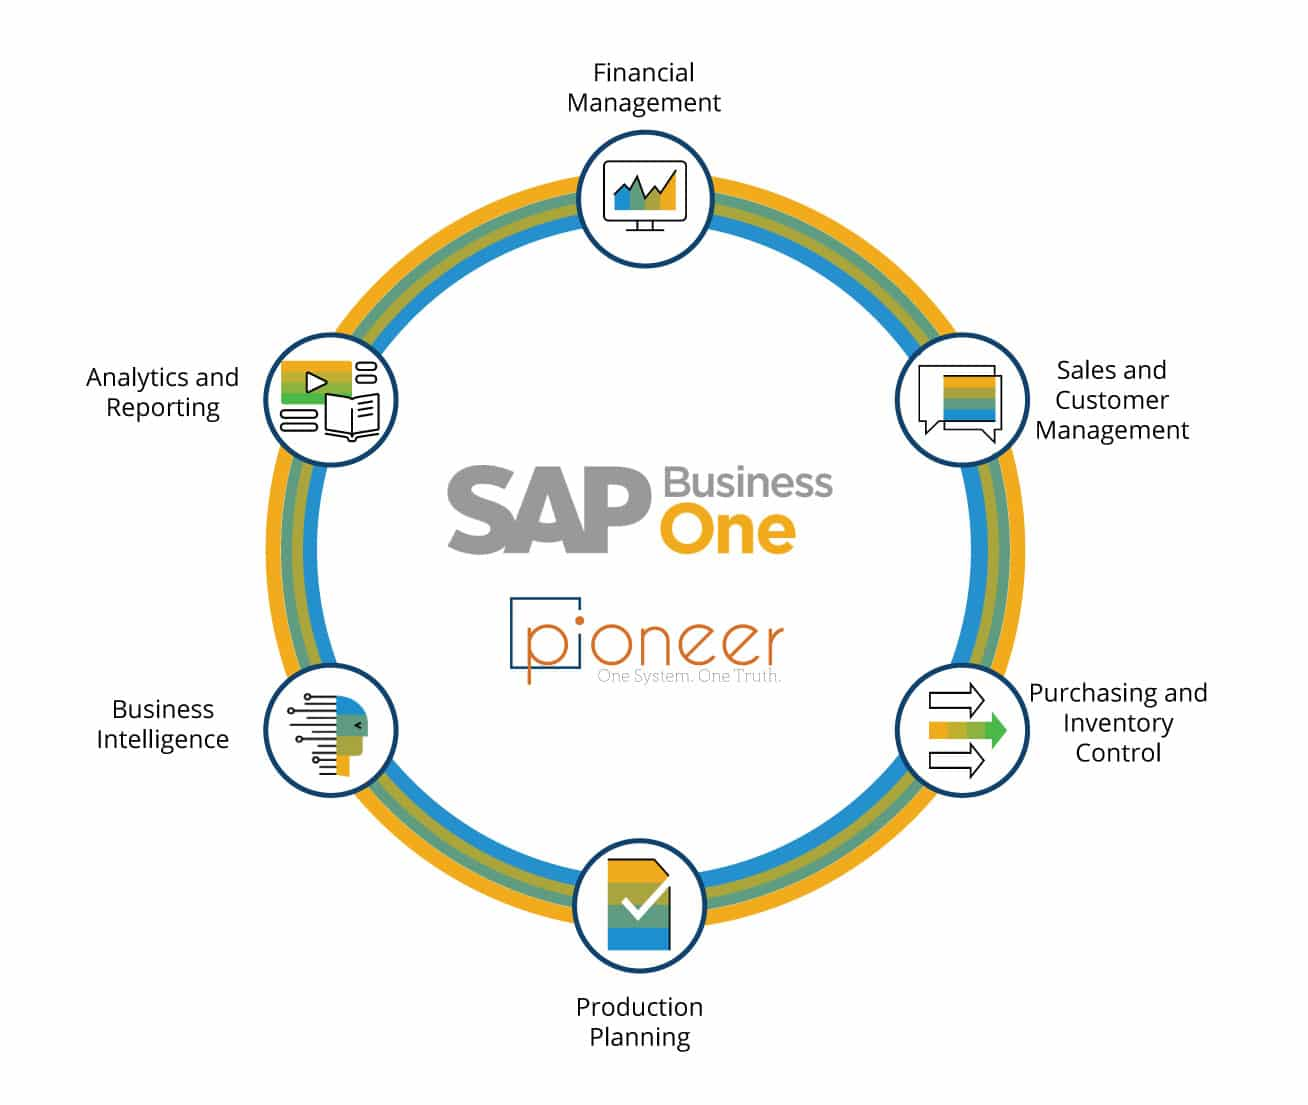 What is sap software used for? all these things and more with pioneer B1